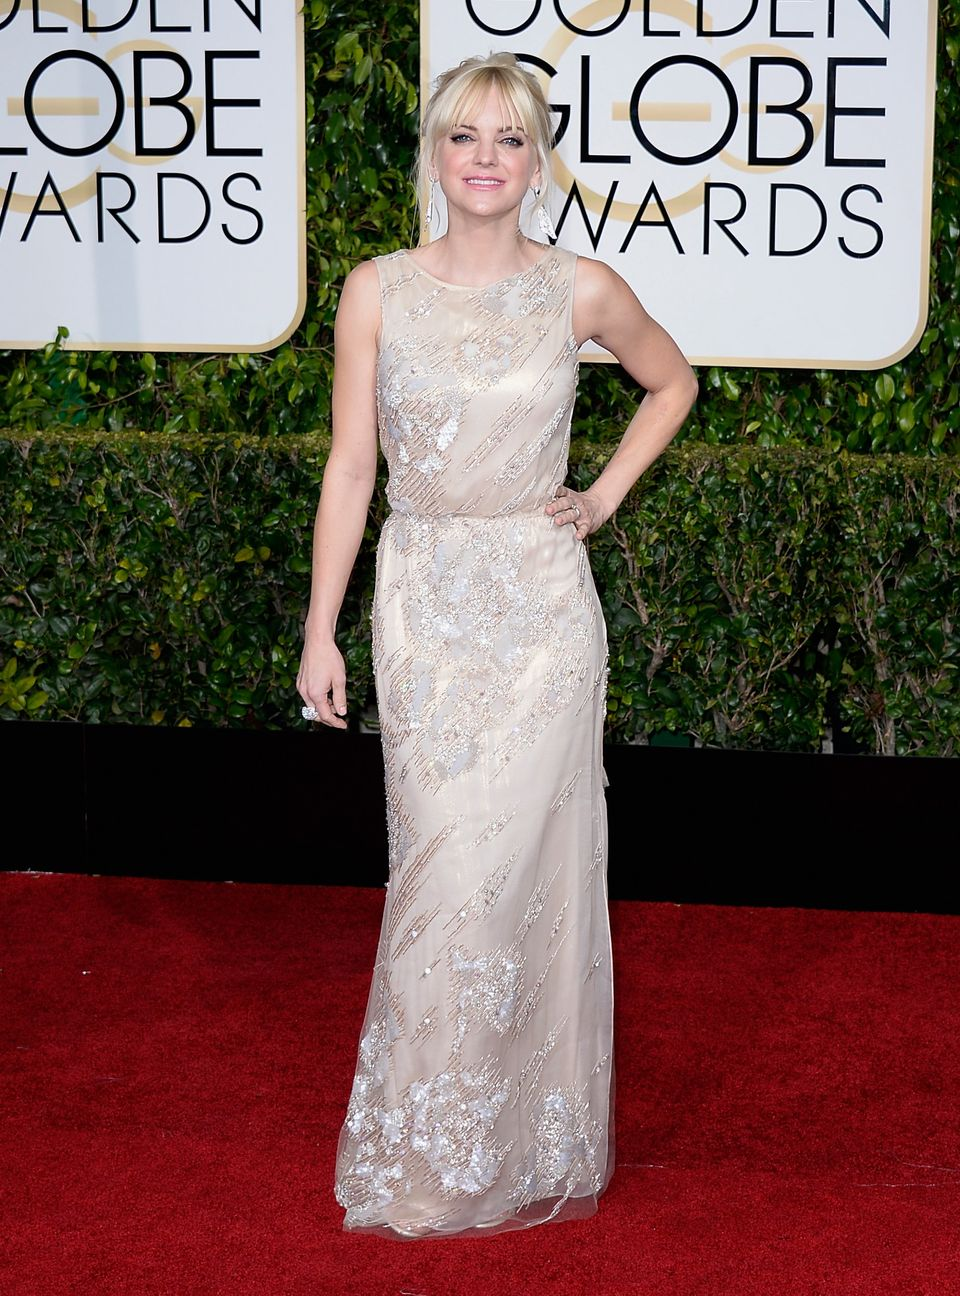 BEVERLY HILLS, CA - JANUARY 11:  72nd ANNUAL GOLDEN GLOBE AWARDS -- Pictured: Actress Anna Faris arrives to the 72nd Annual G